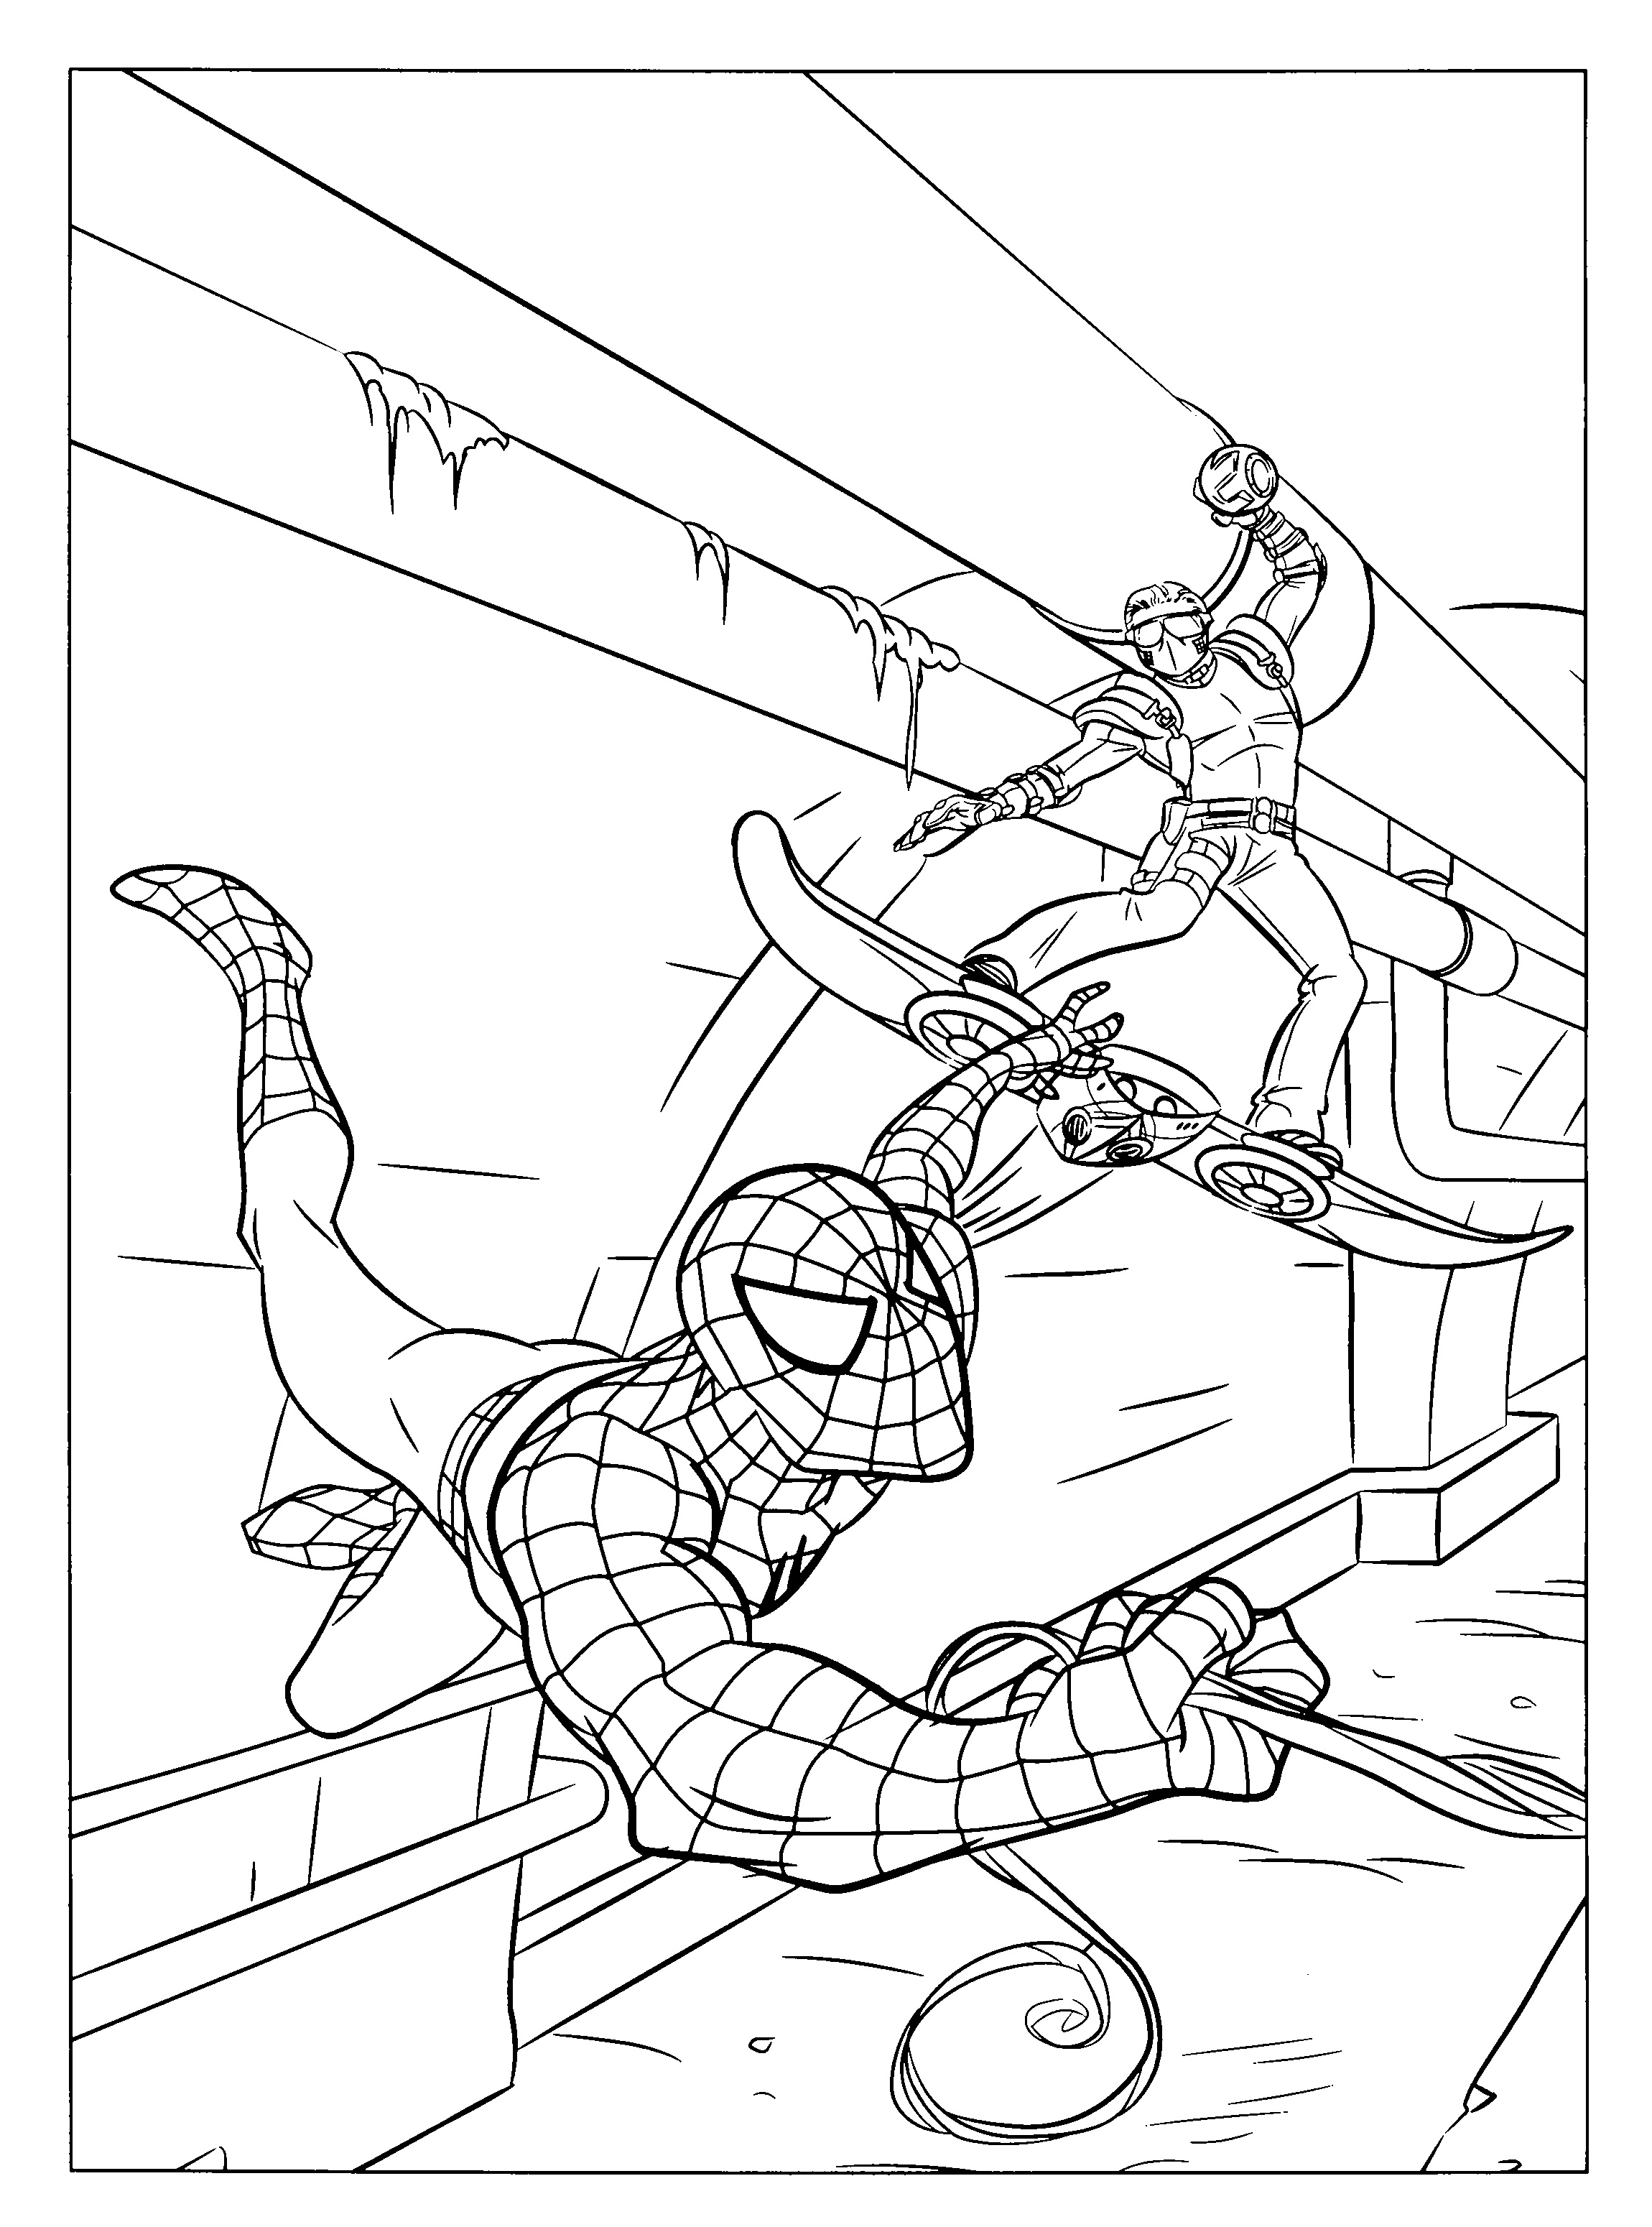 Spiderman 3 Venom Coloring Pages Spiderman 3 Coloring Pages Online